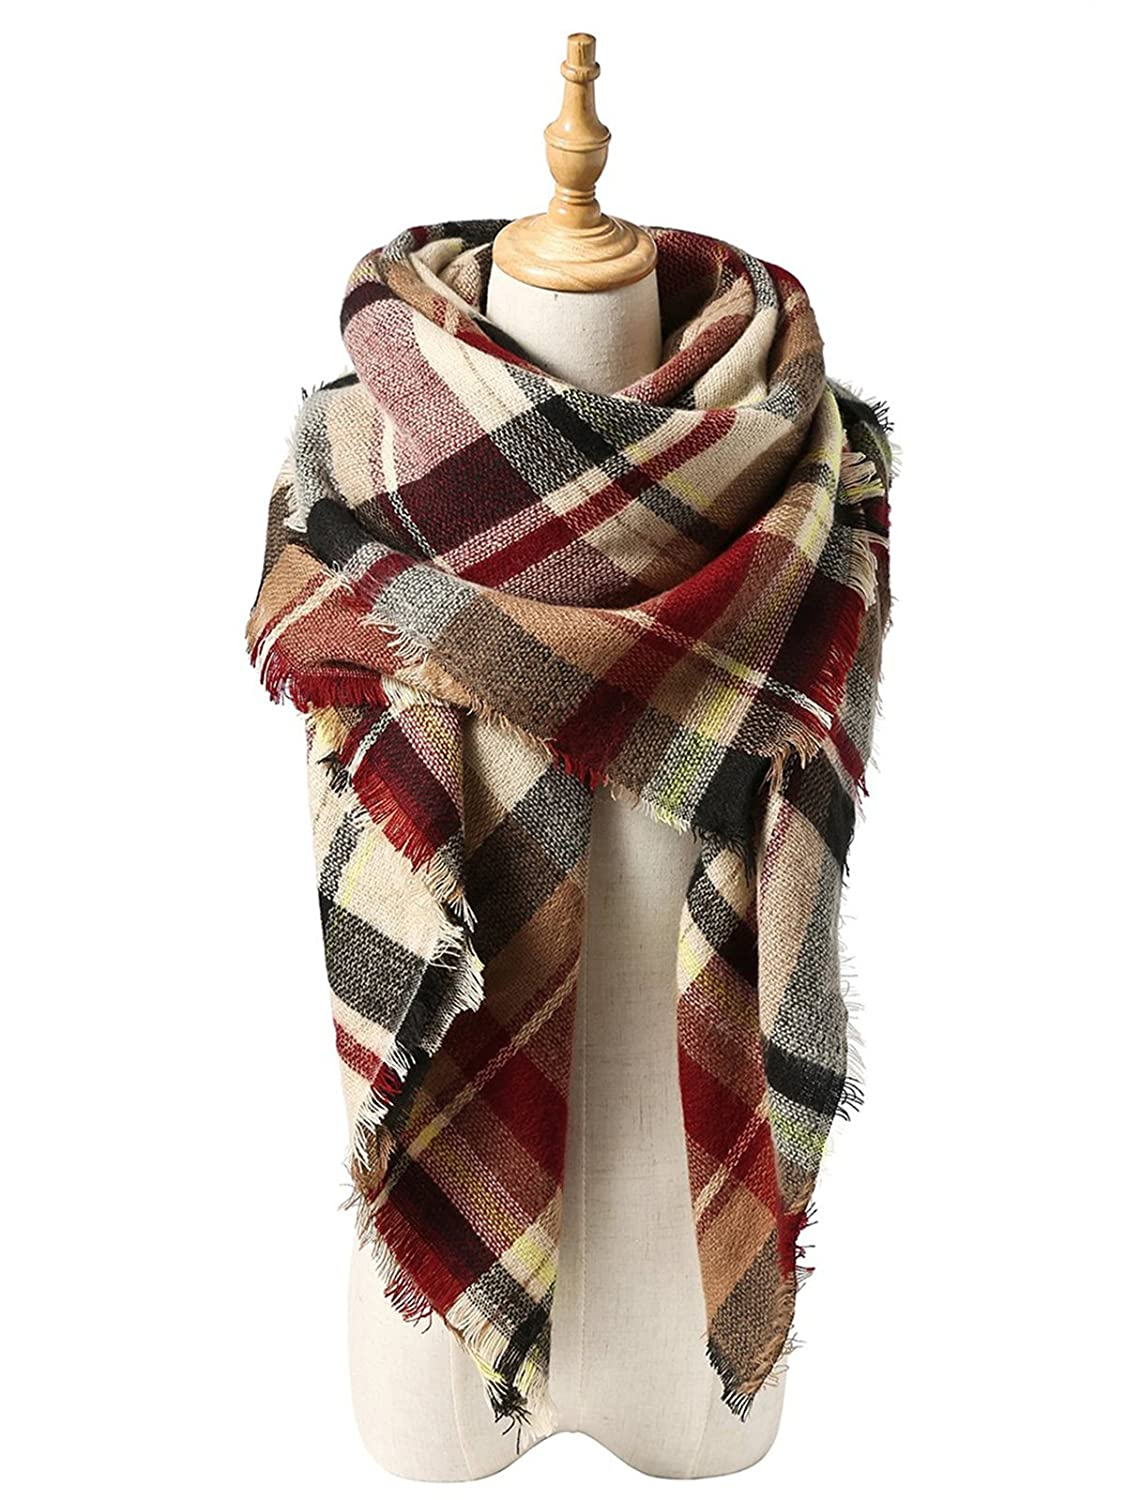 Cheap Sale Scarves Men Winter Warm Scarf Classic Style Cape Ladies Plaid Dropshipping Wholesalers Suppliers Plaid Twill For Dress Scarfs Rich And Magnificent Men's Scarves